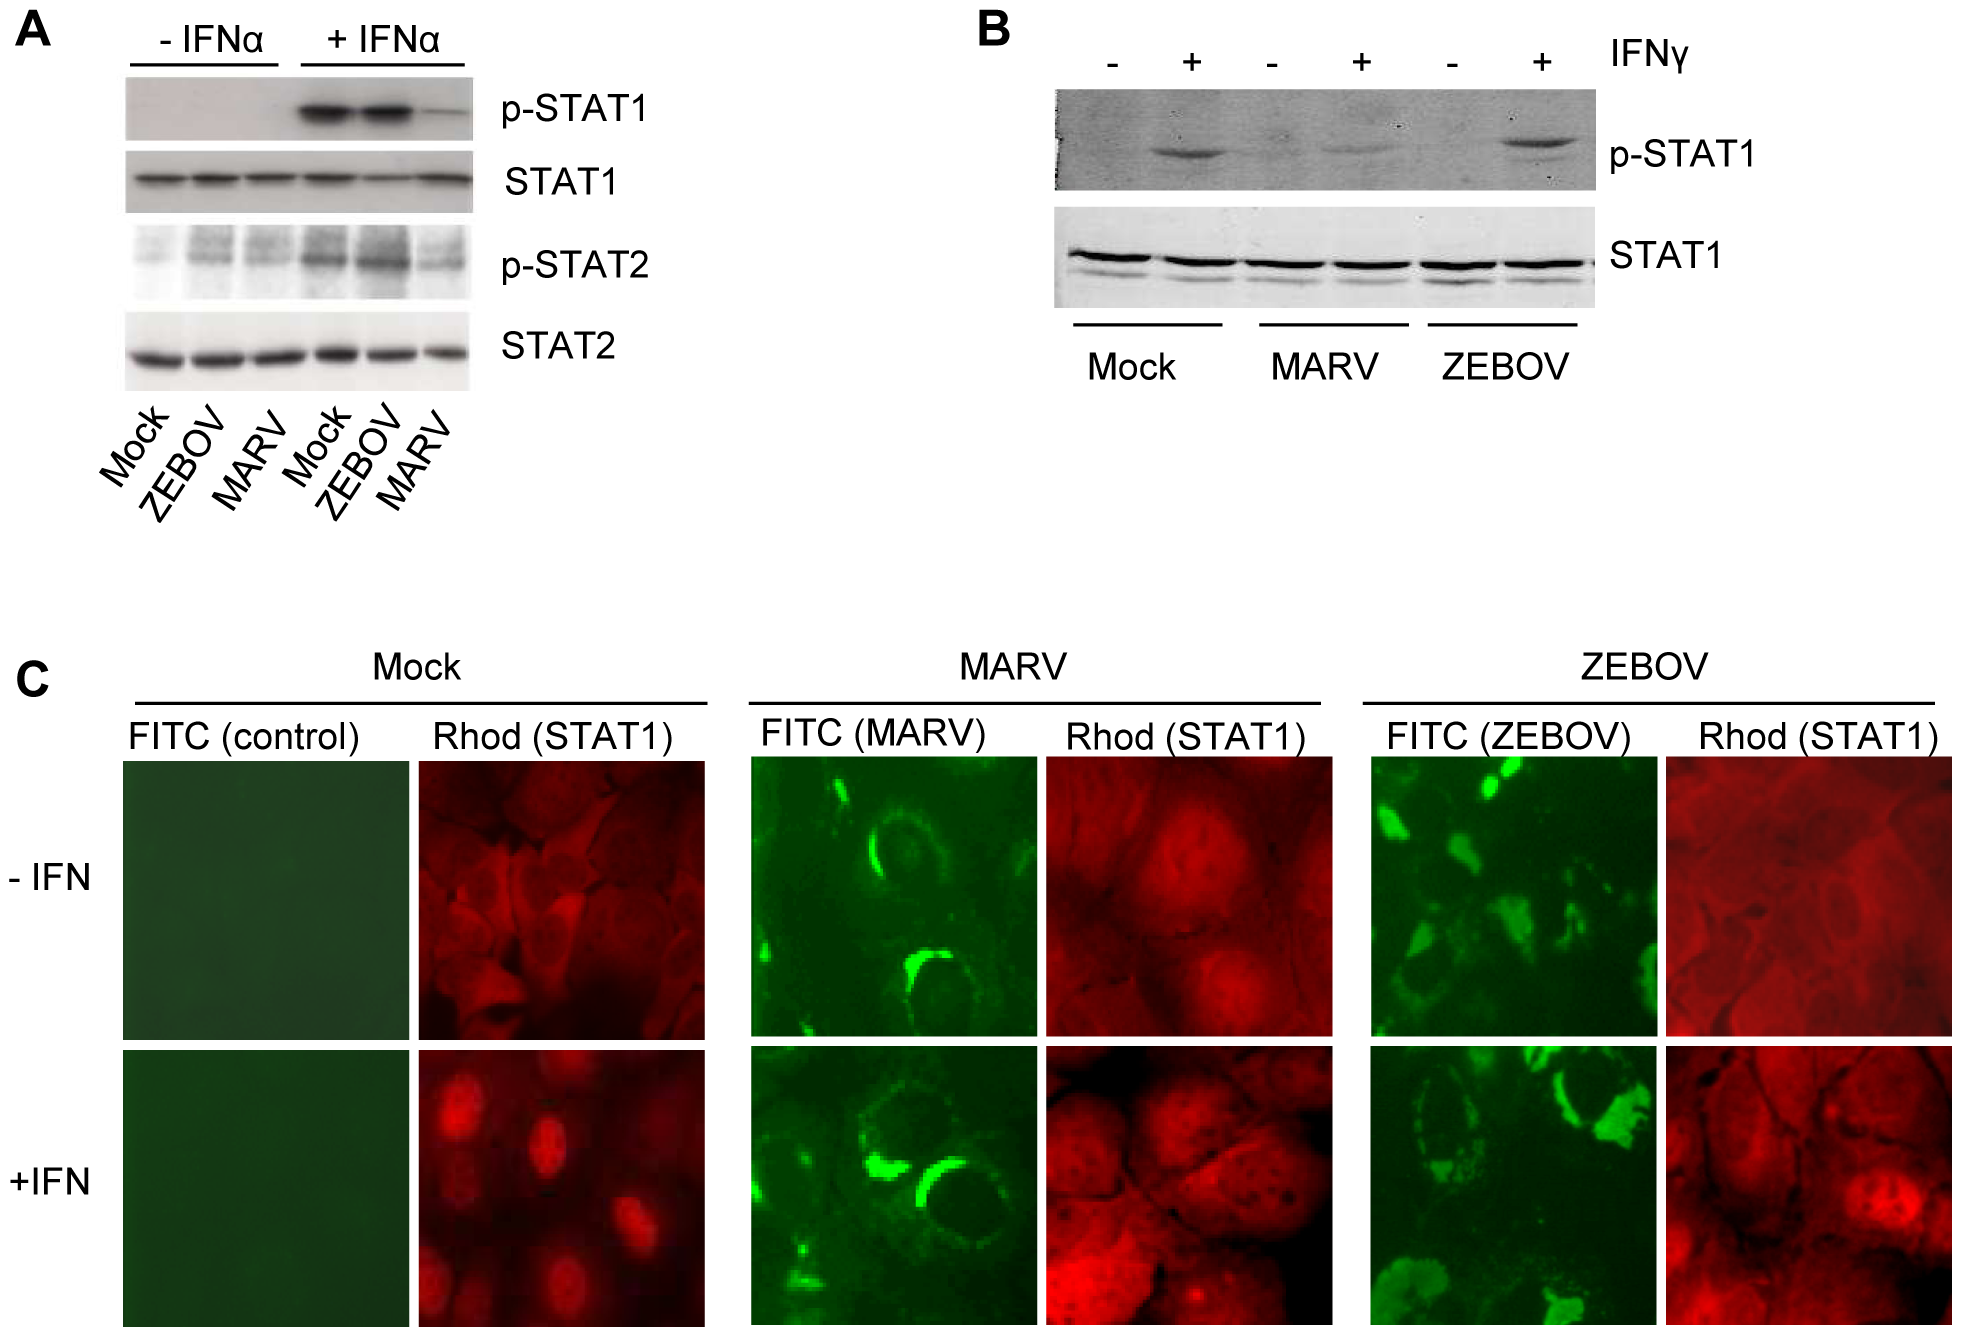 MARV infection prevents IFN-mediated phosphorylation and nuclear translocation of STAT proteins.